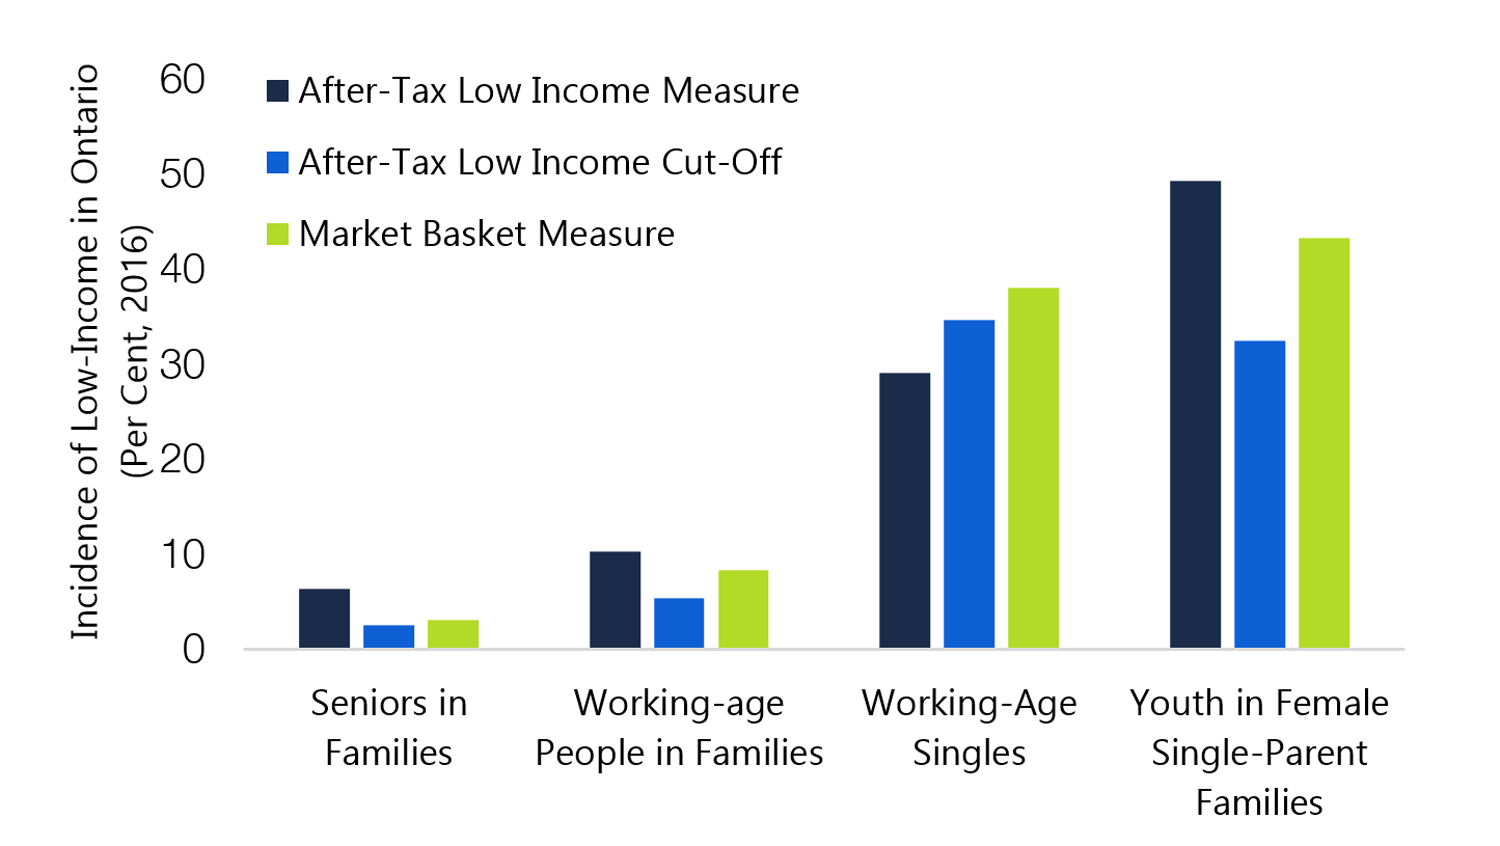 1.10 Working-age singles and youth in single-parent families are more likely to be poor